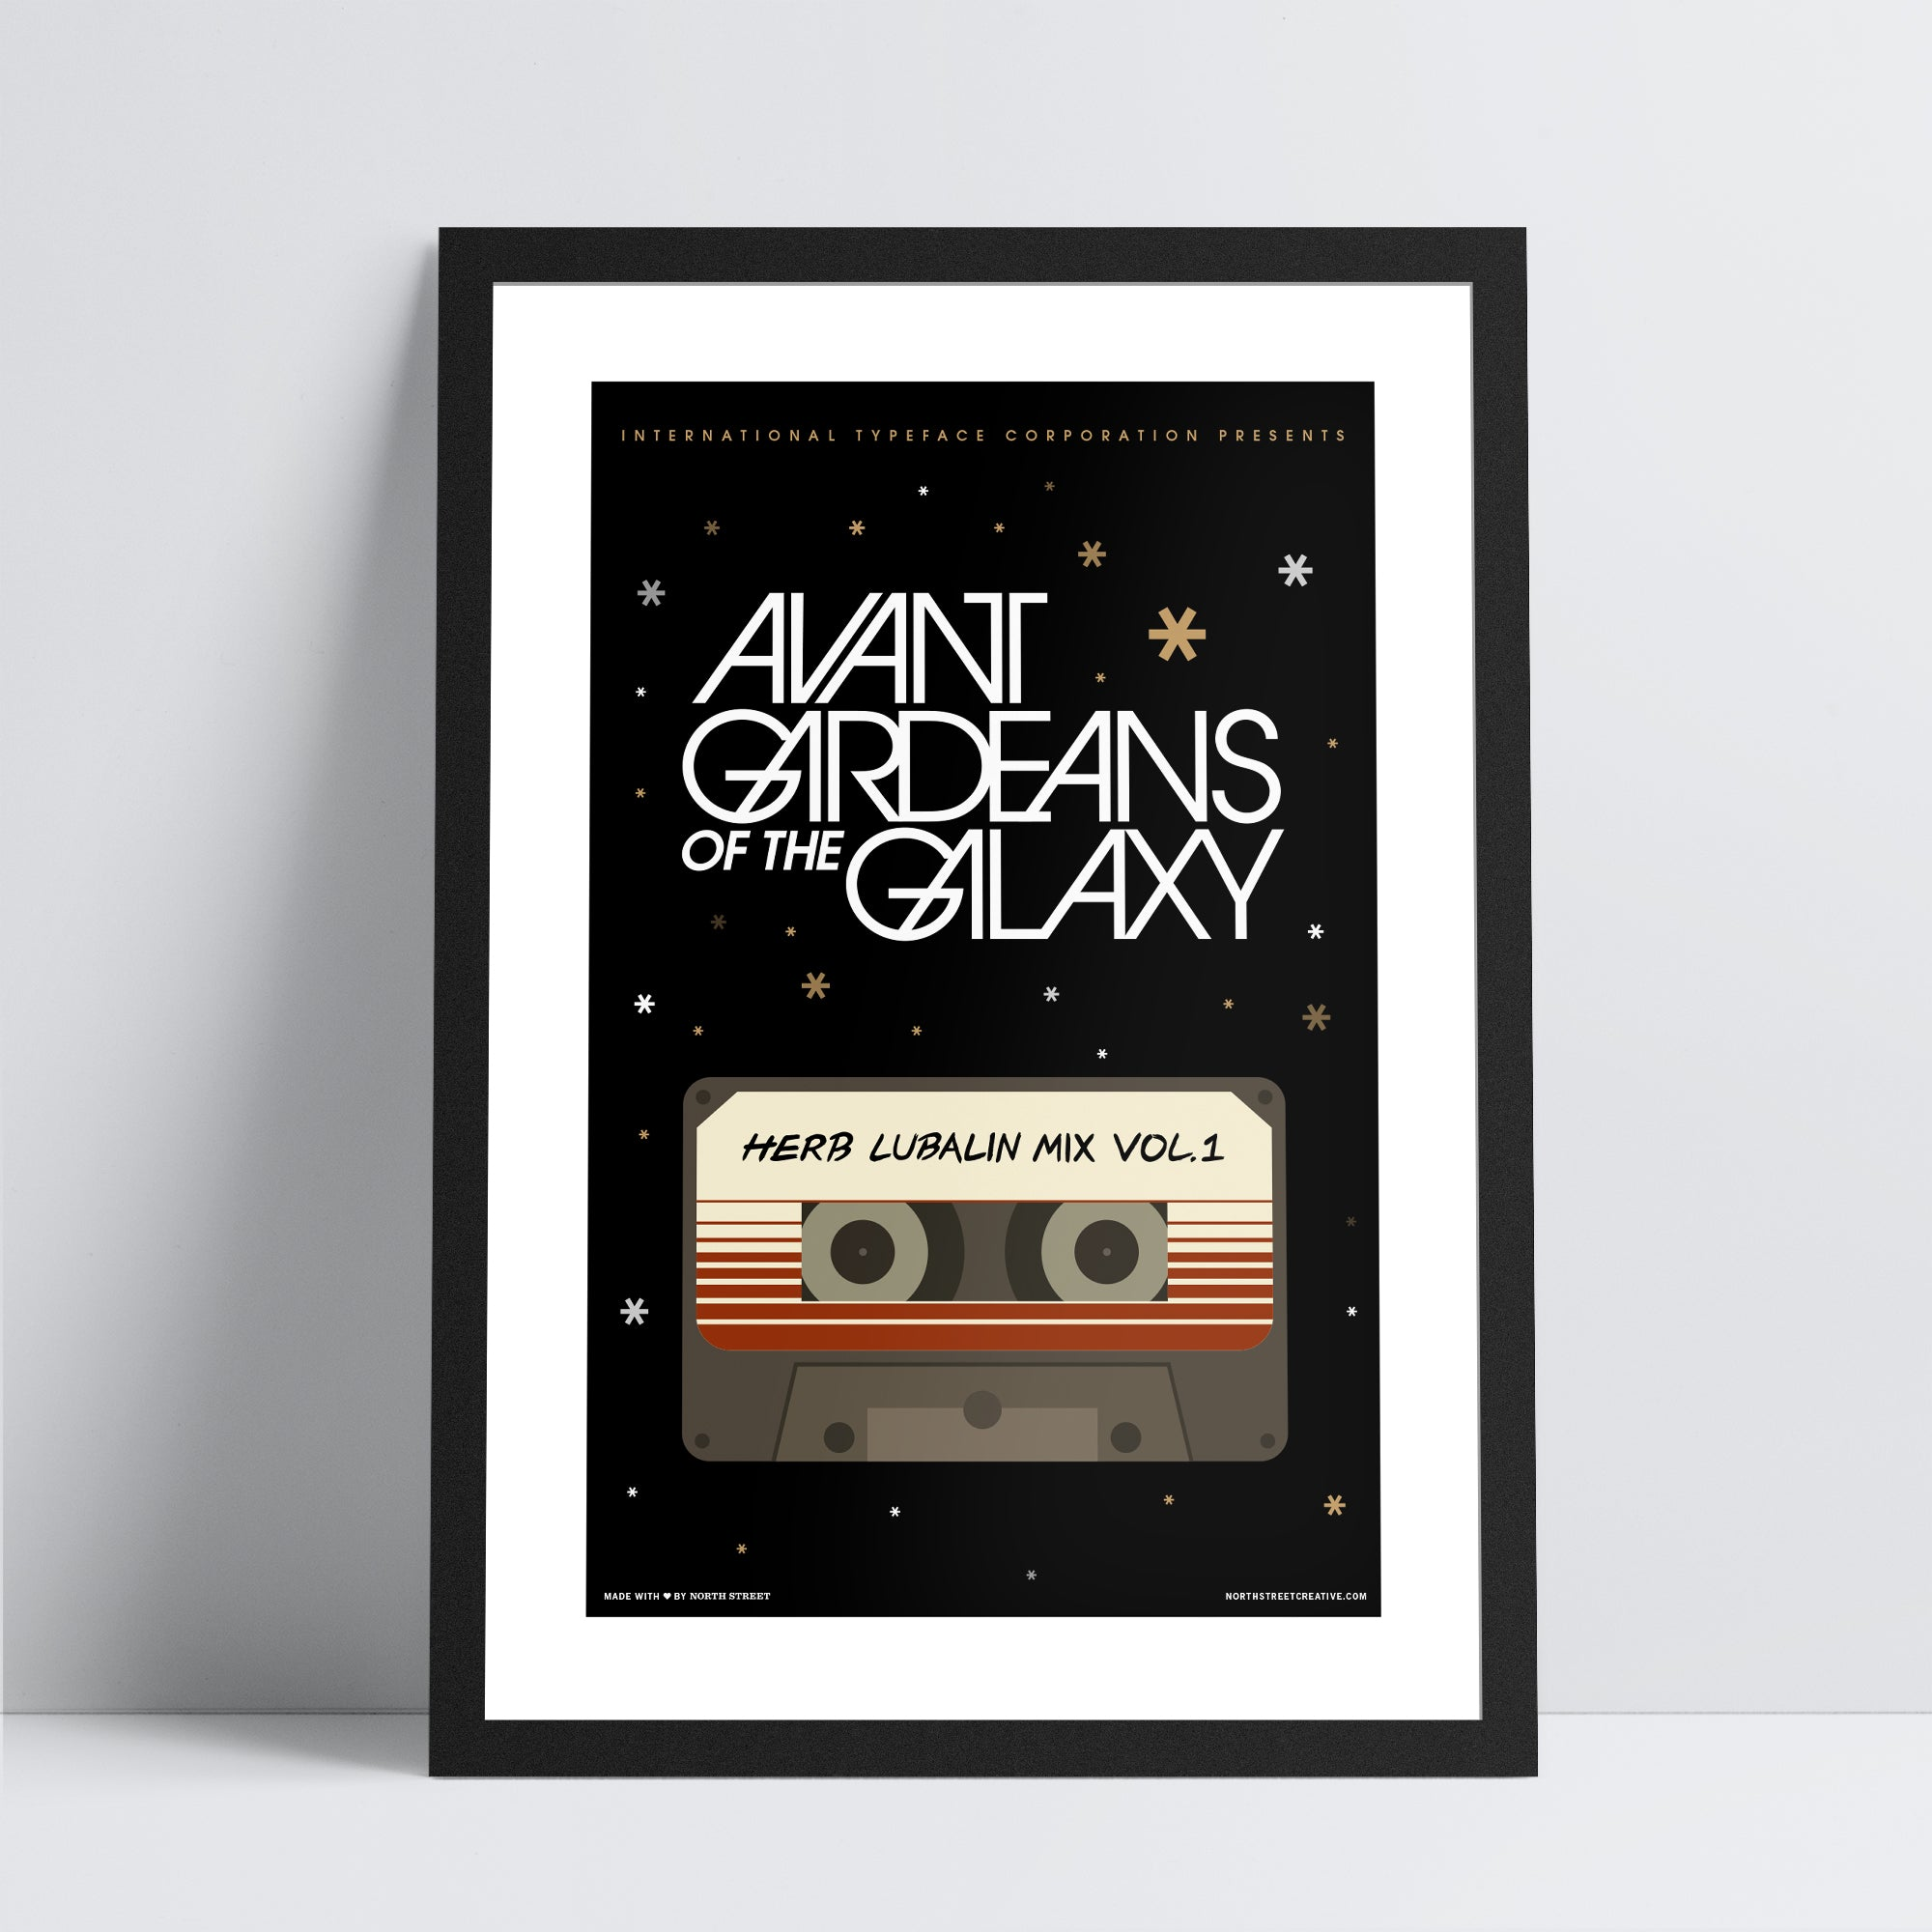 Avant Gardeans of the Galaxy